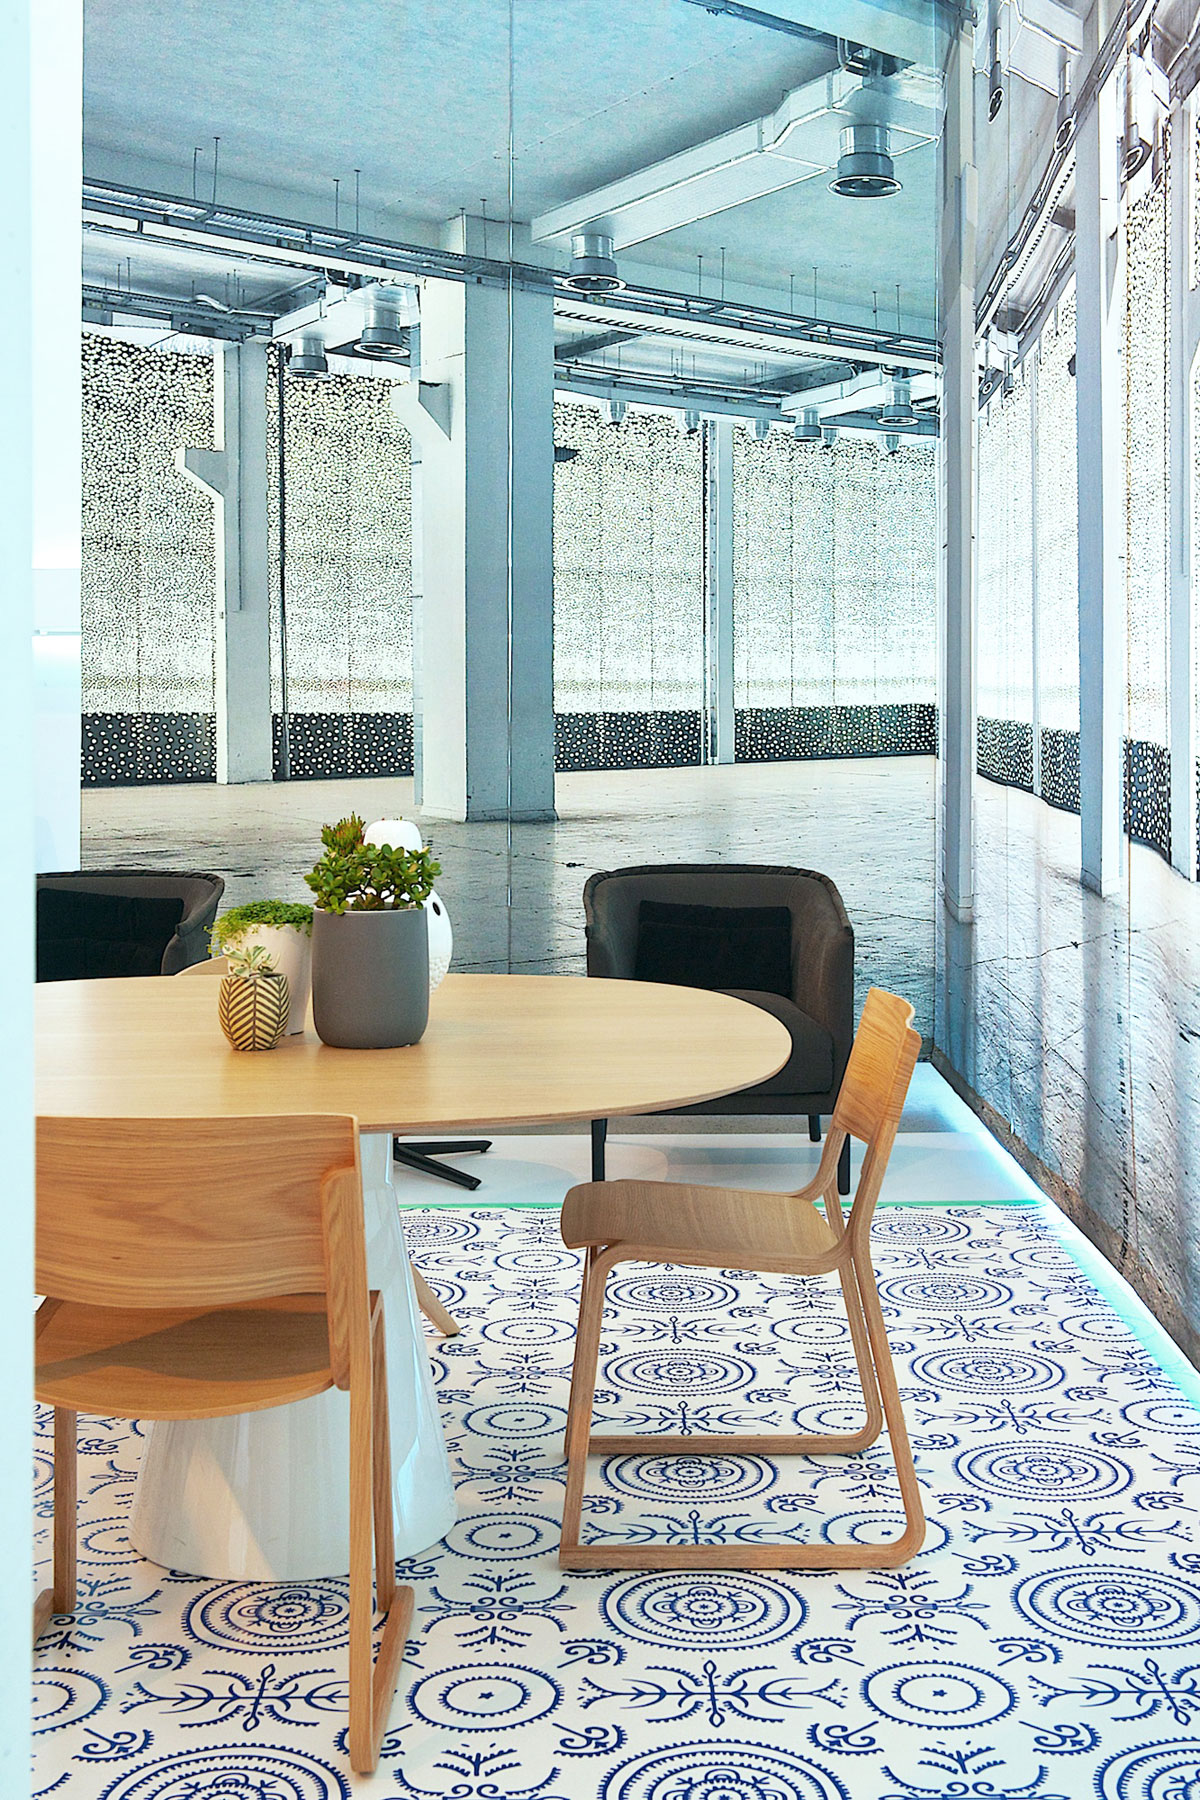 Yellowtrace for KE-ZU at Sydney Indesign  |  Yellowtrace